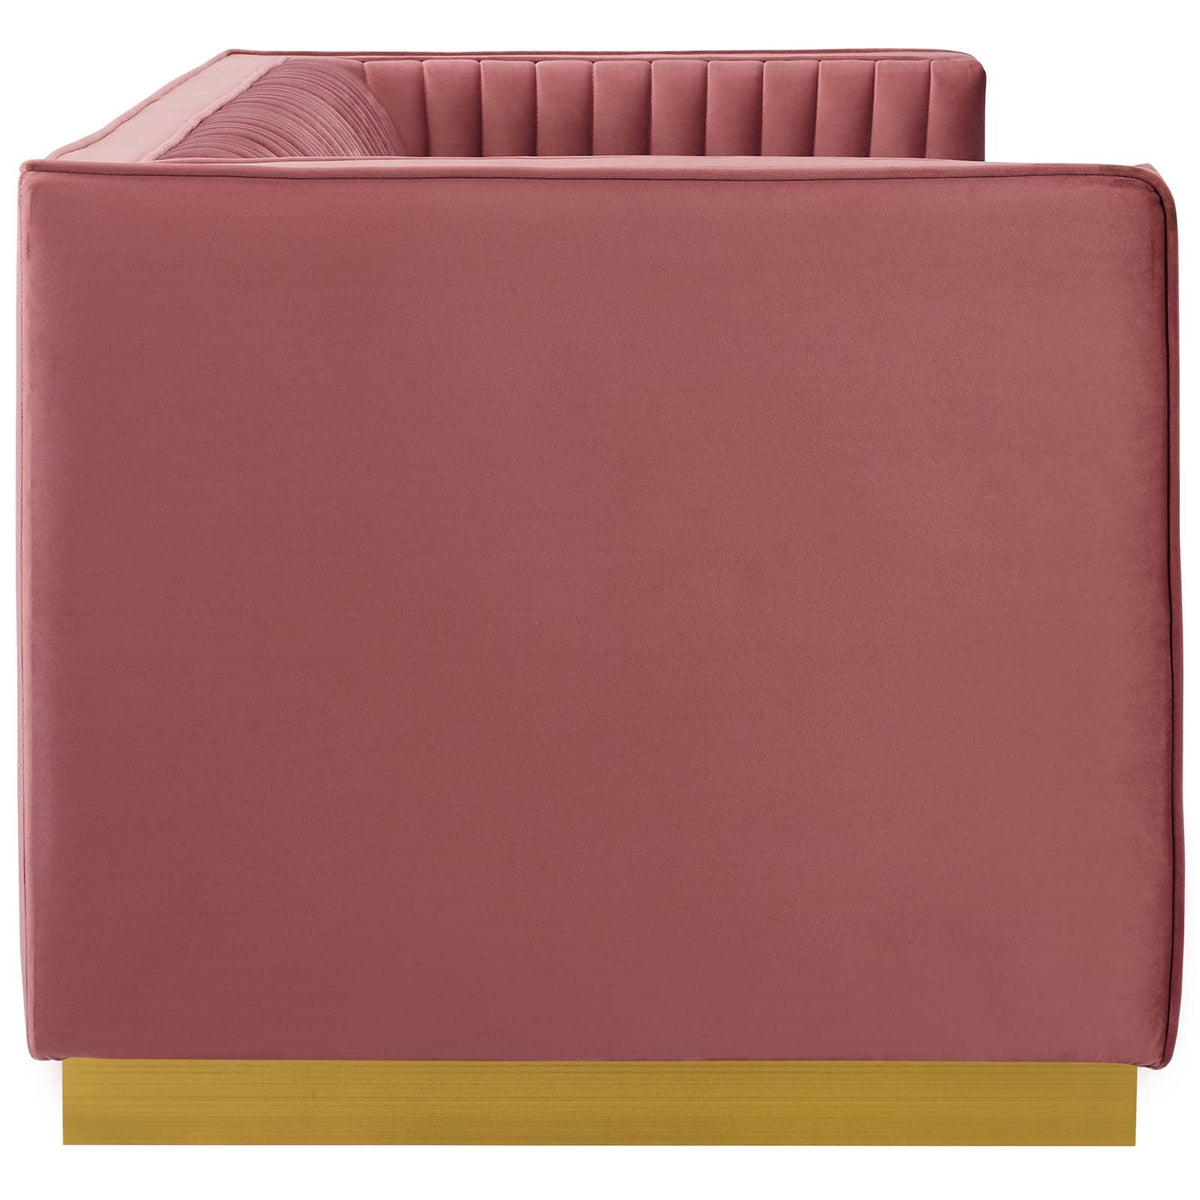 Tuulia Velvet Sofa Dusty Rose